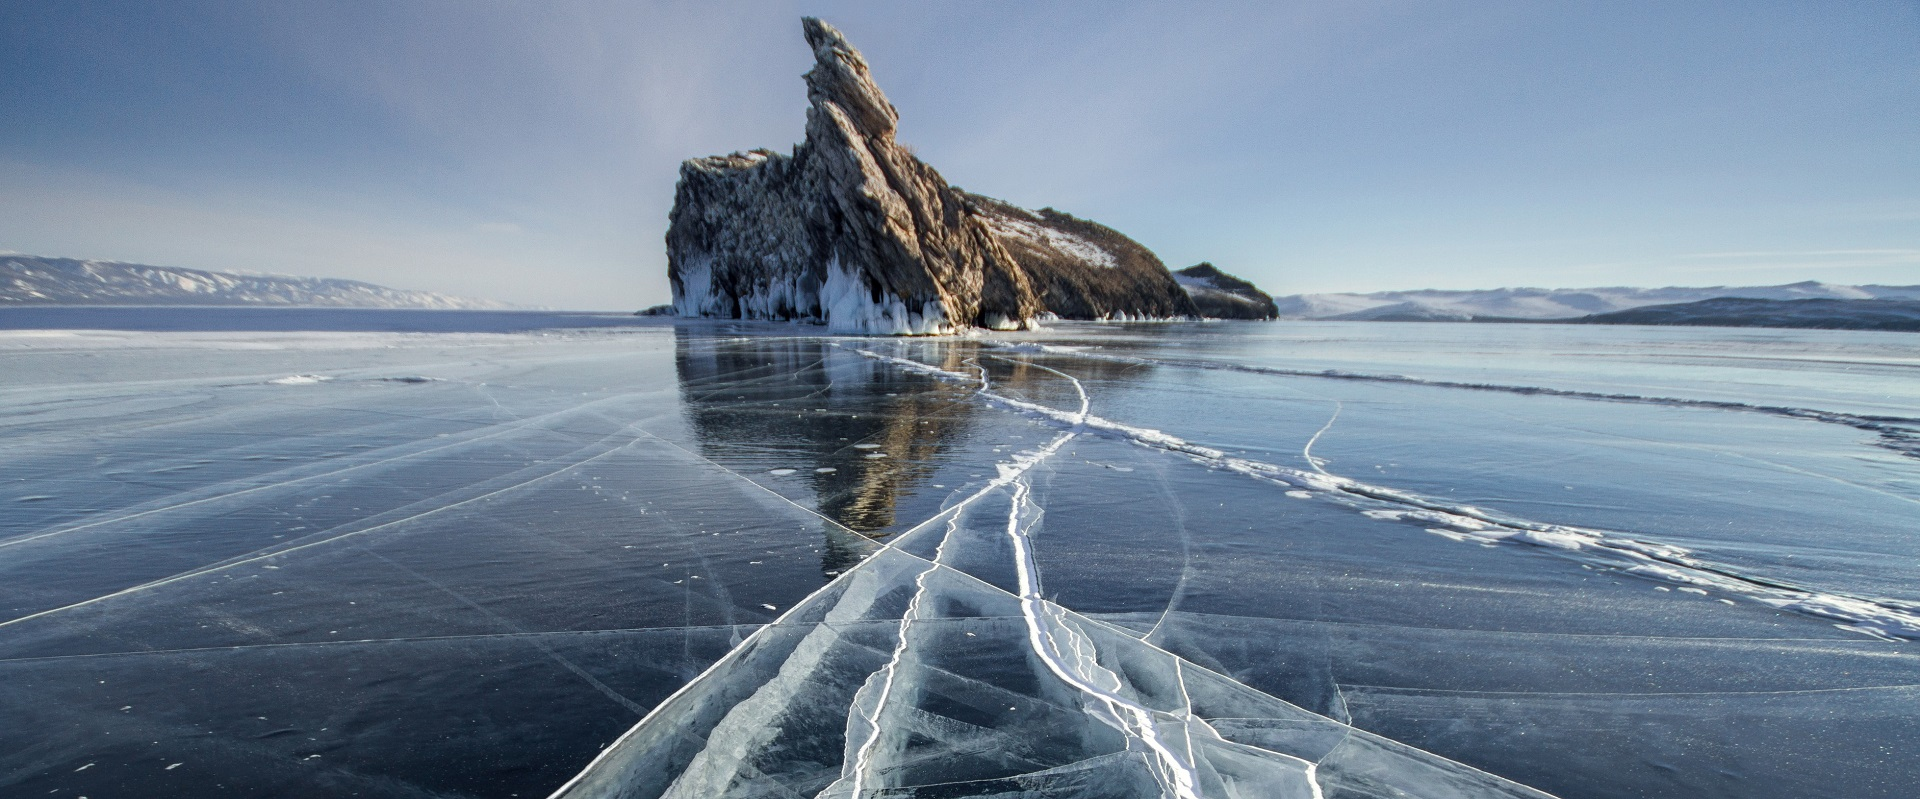 Lake Baikal frozen in winter, Russia, one of the other 7 wonders of the world.